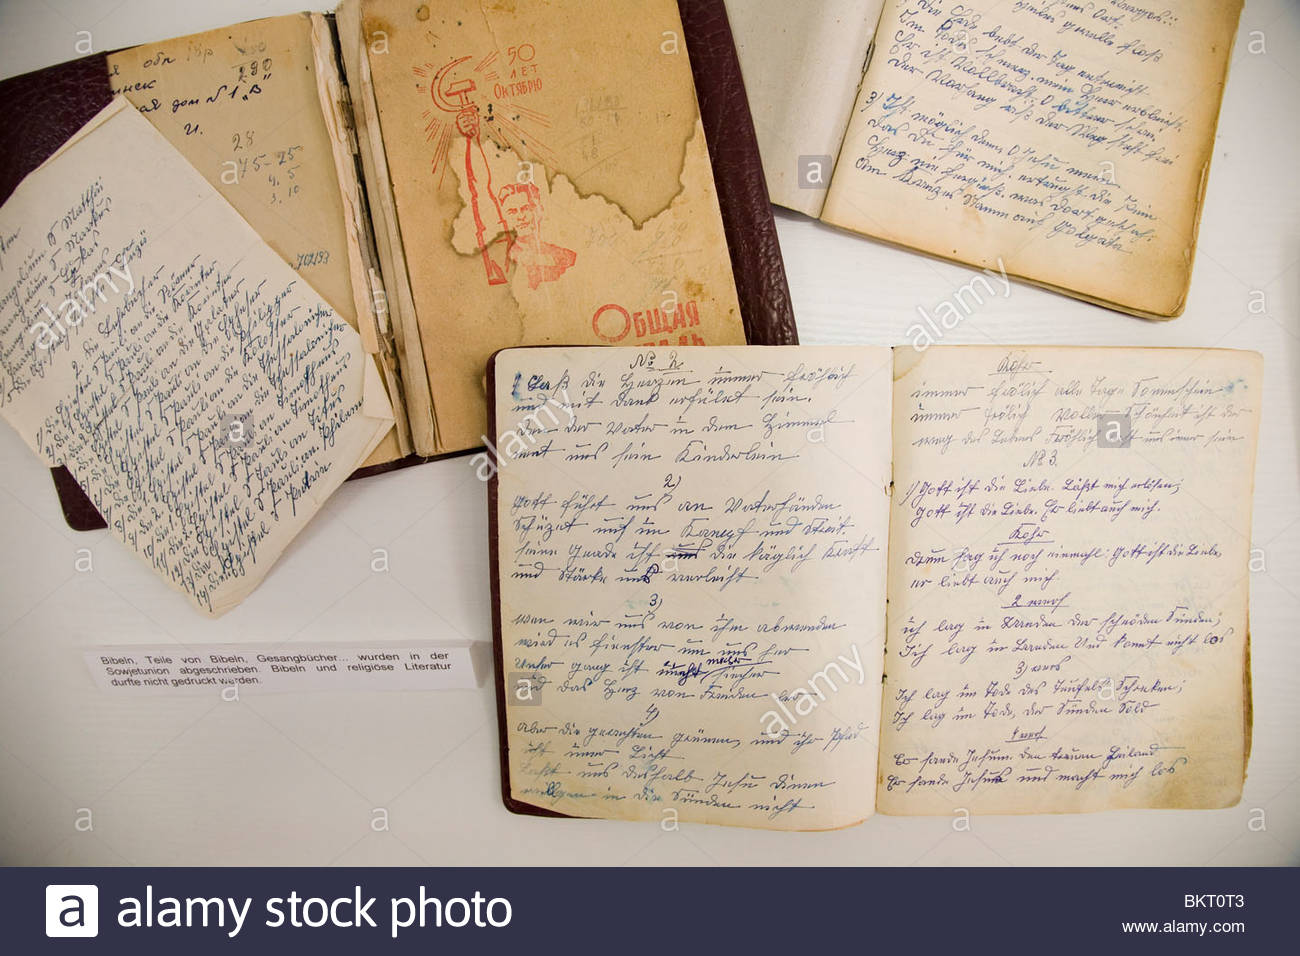 writings and religious books banned by the government of the East German,the Stasi Museum,Berlin,Germany - Stock Image